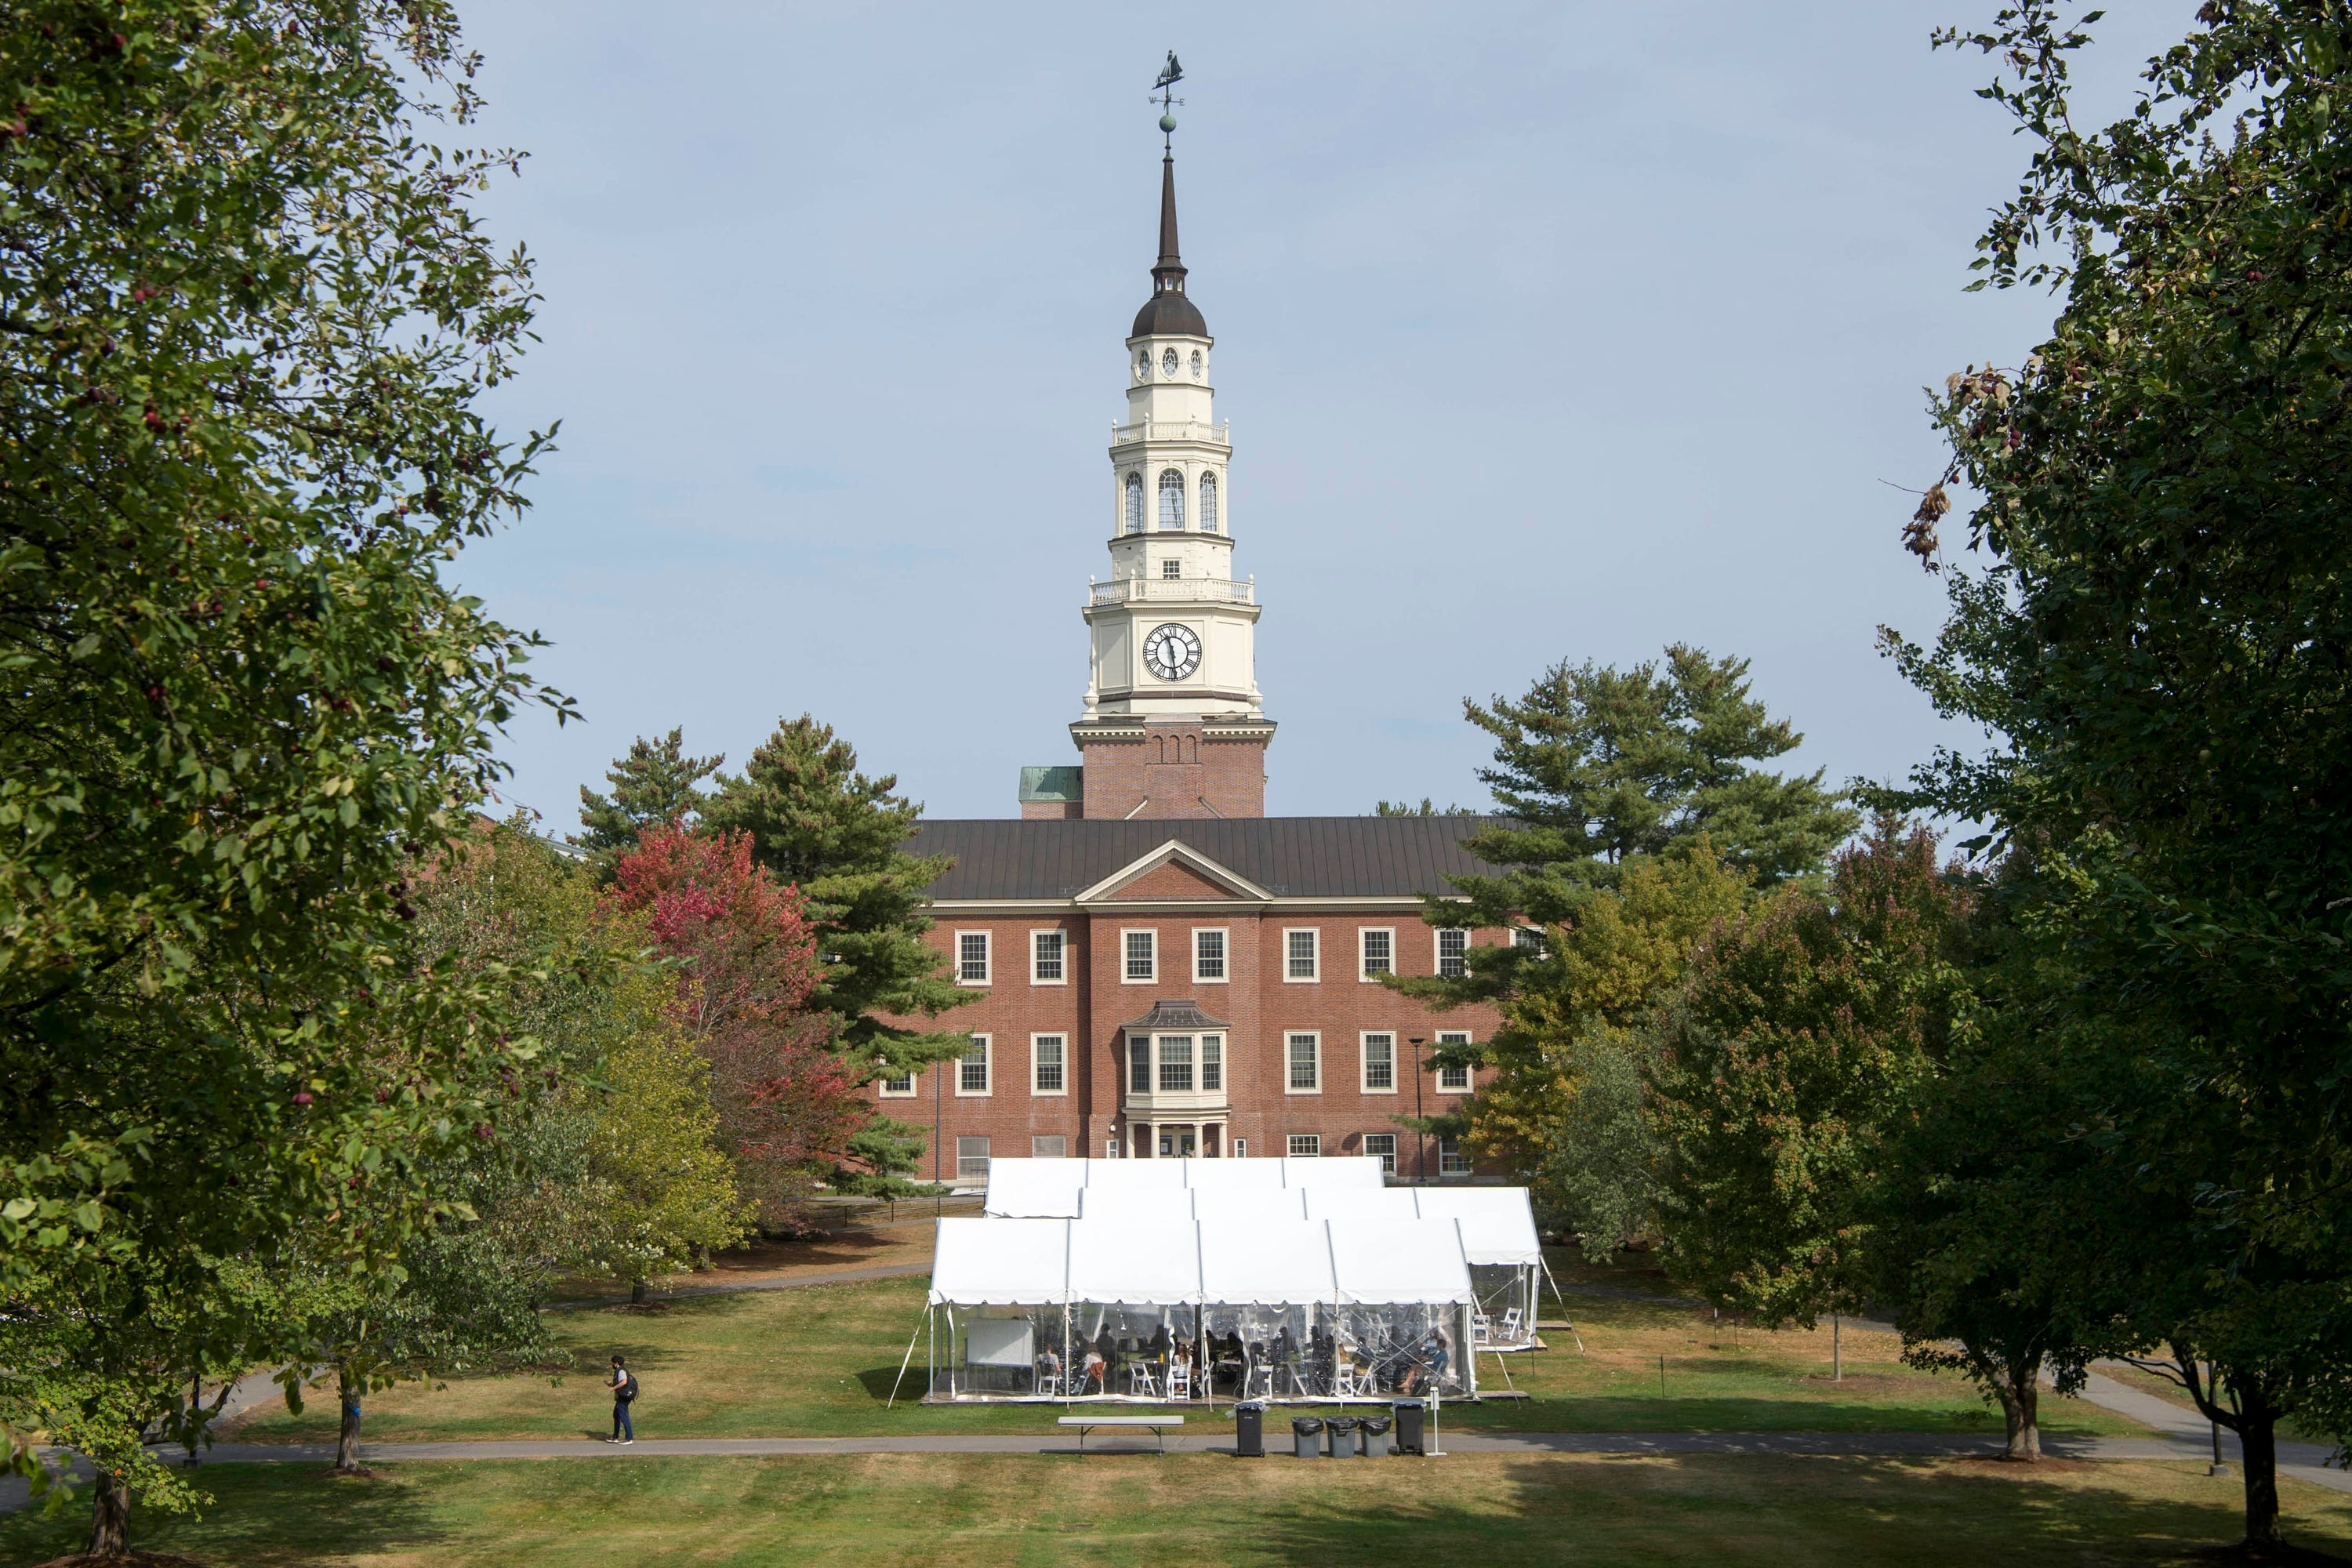 Outdoor classroom tents fill the green space next to Miller Library, seen in the background, as students take in-person classes at Colby College in Waterville, Maine.